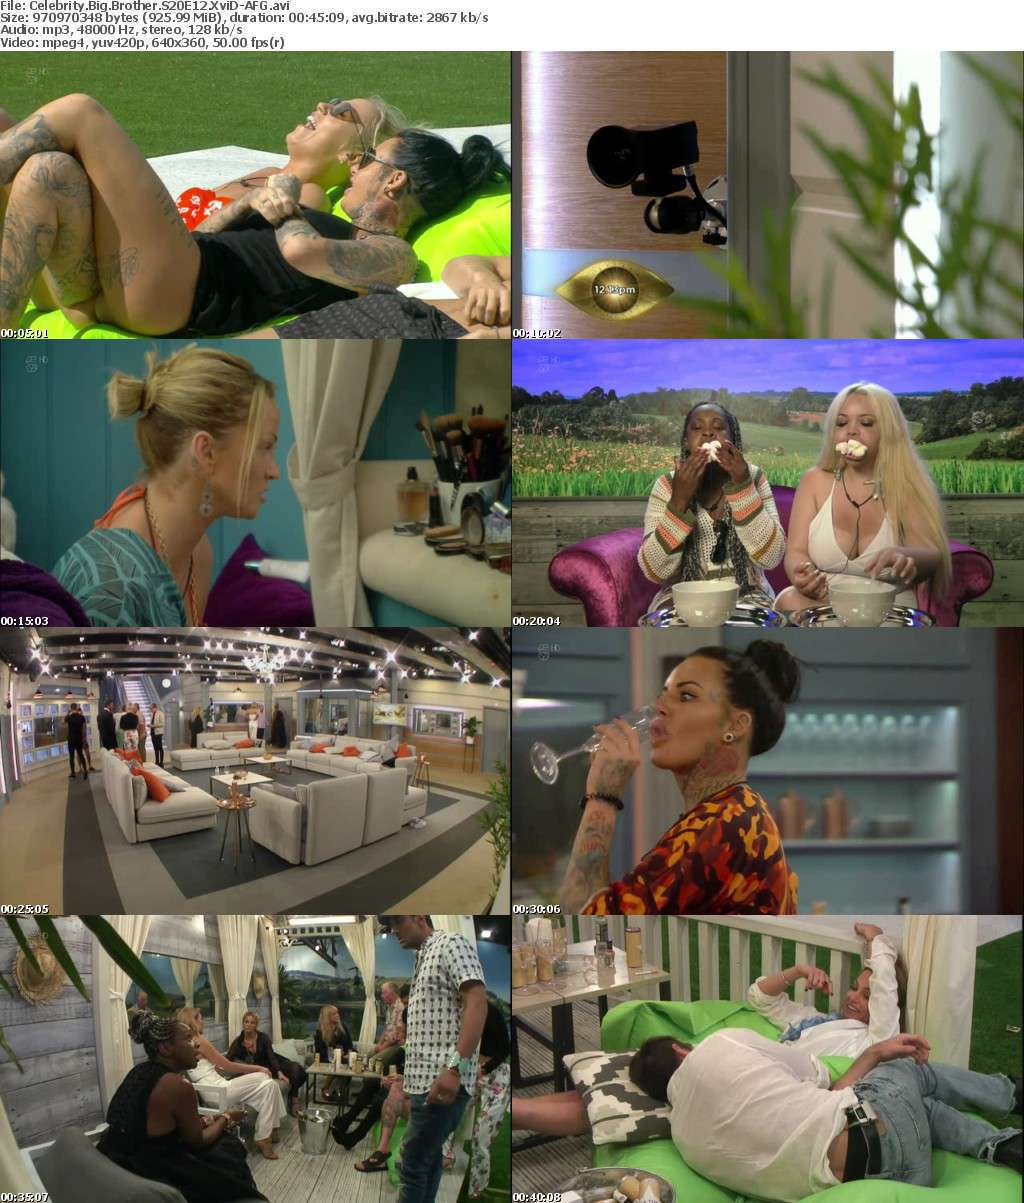 Celebrity Big Brother S20E12 XviD-AFG